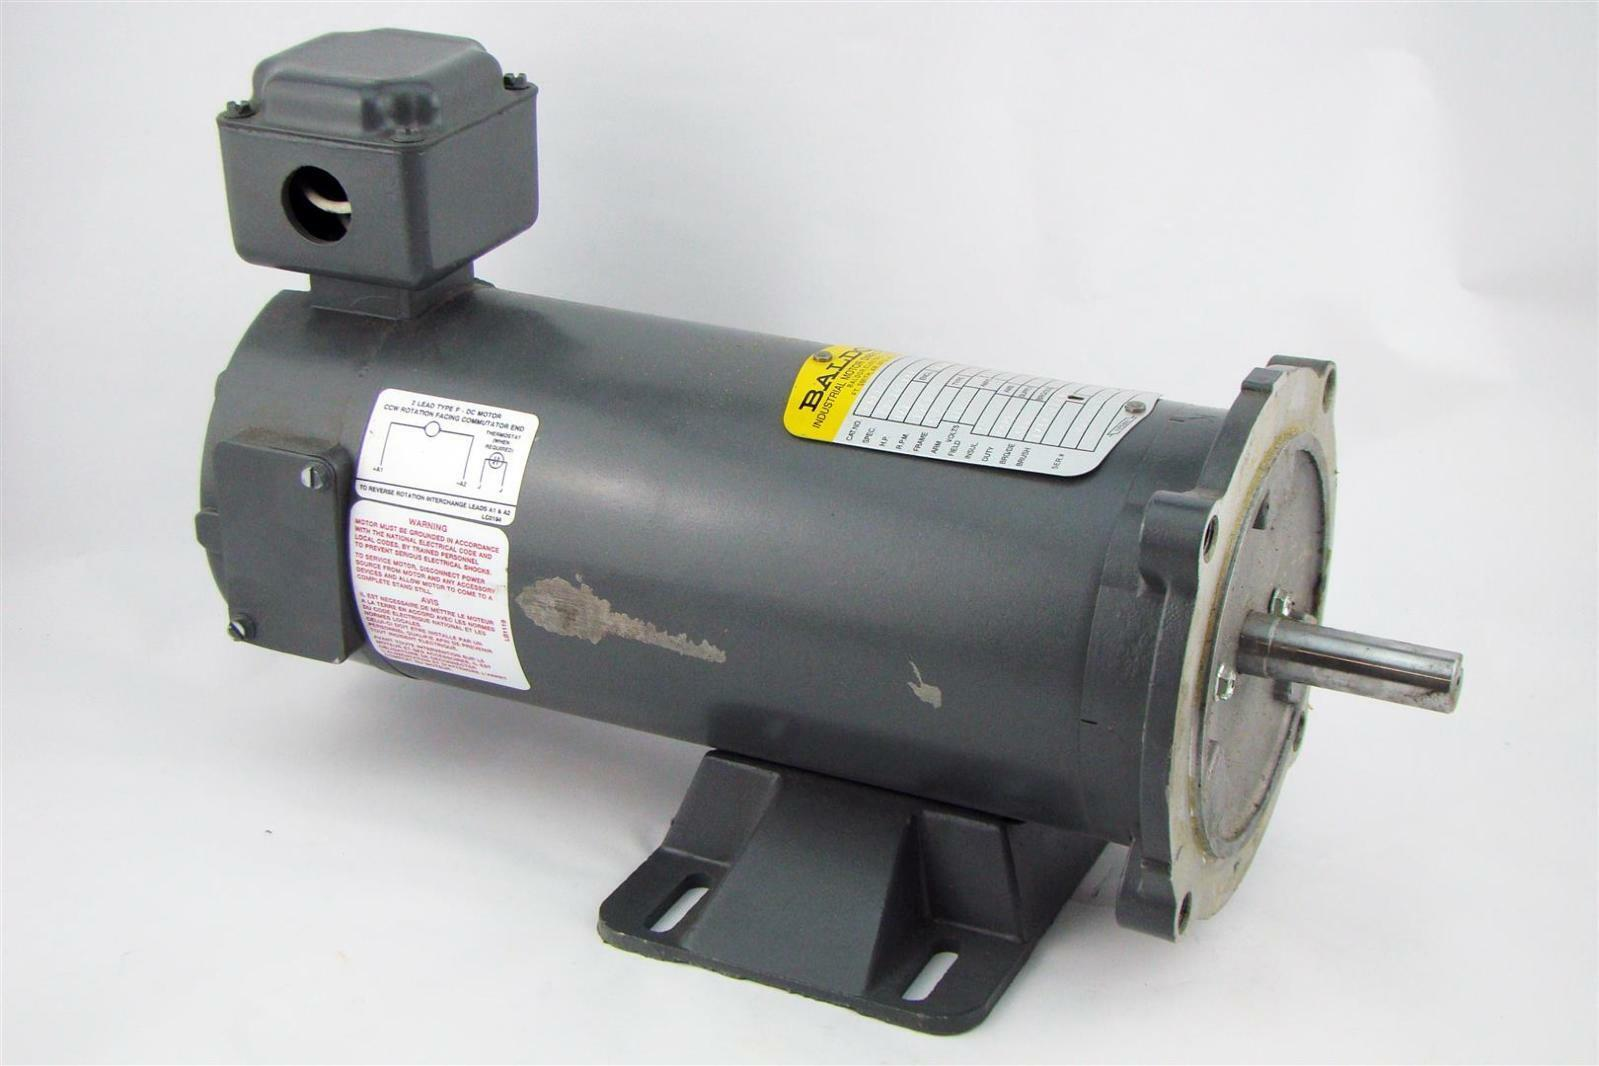 Baldor Industrial Motor Parts Of Baldor Dc Industrial Motor 1 2hp 1750rpm 180v Cdp3326